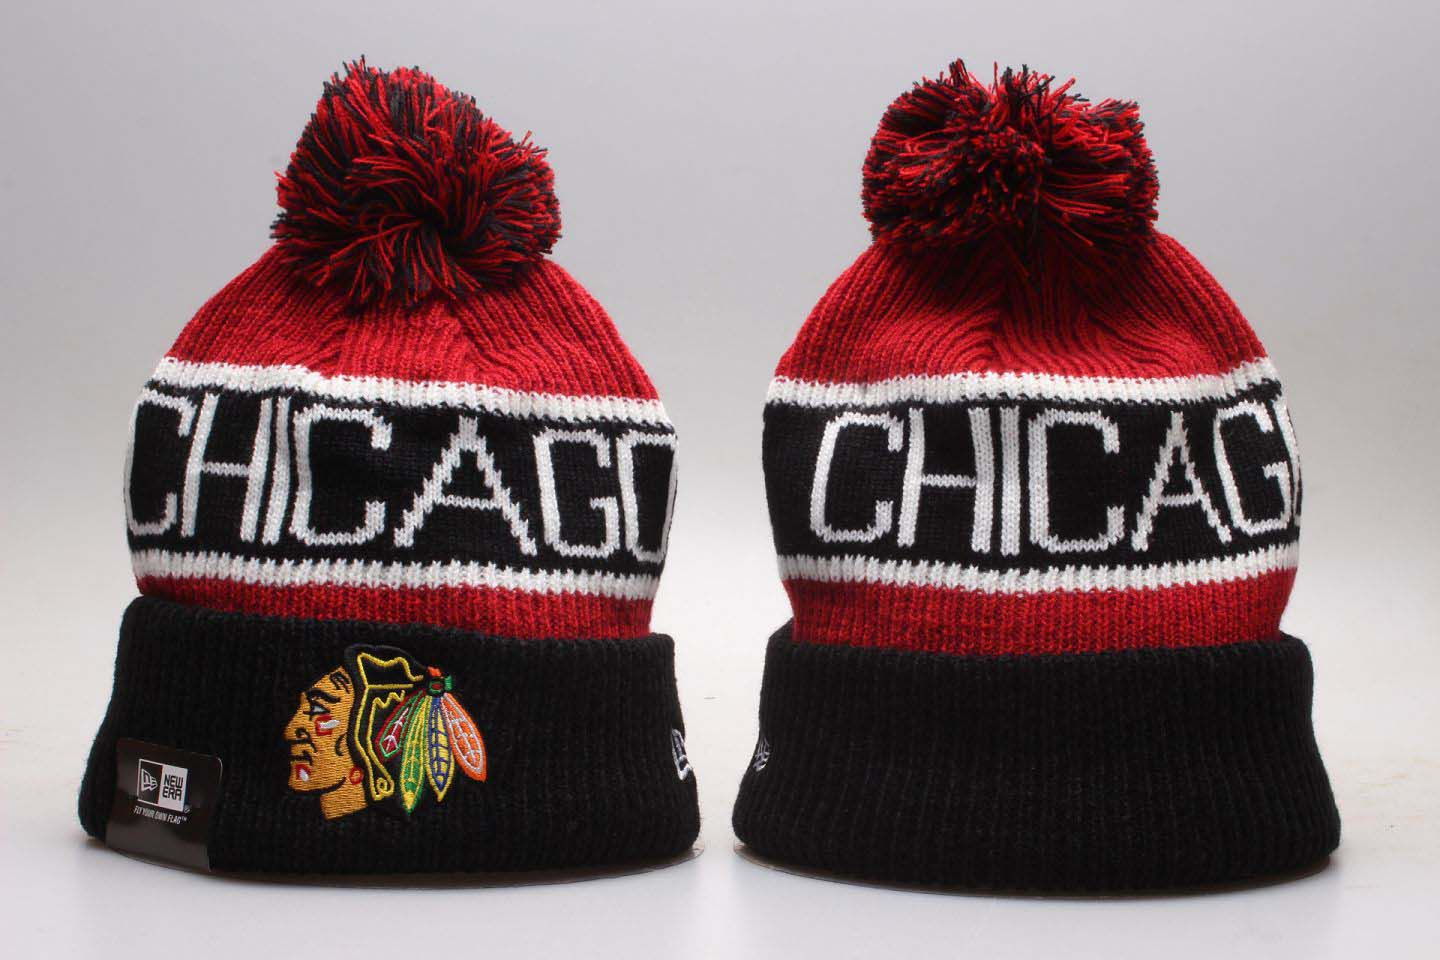 NHL Chicago Blackhawks Beanie hot hat2